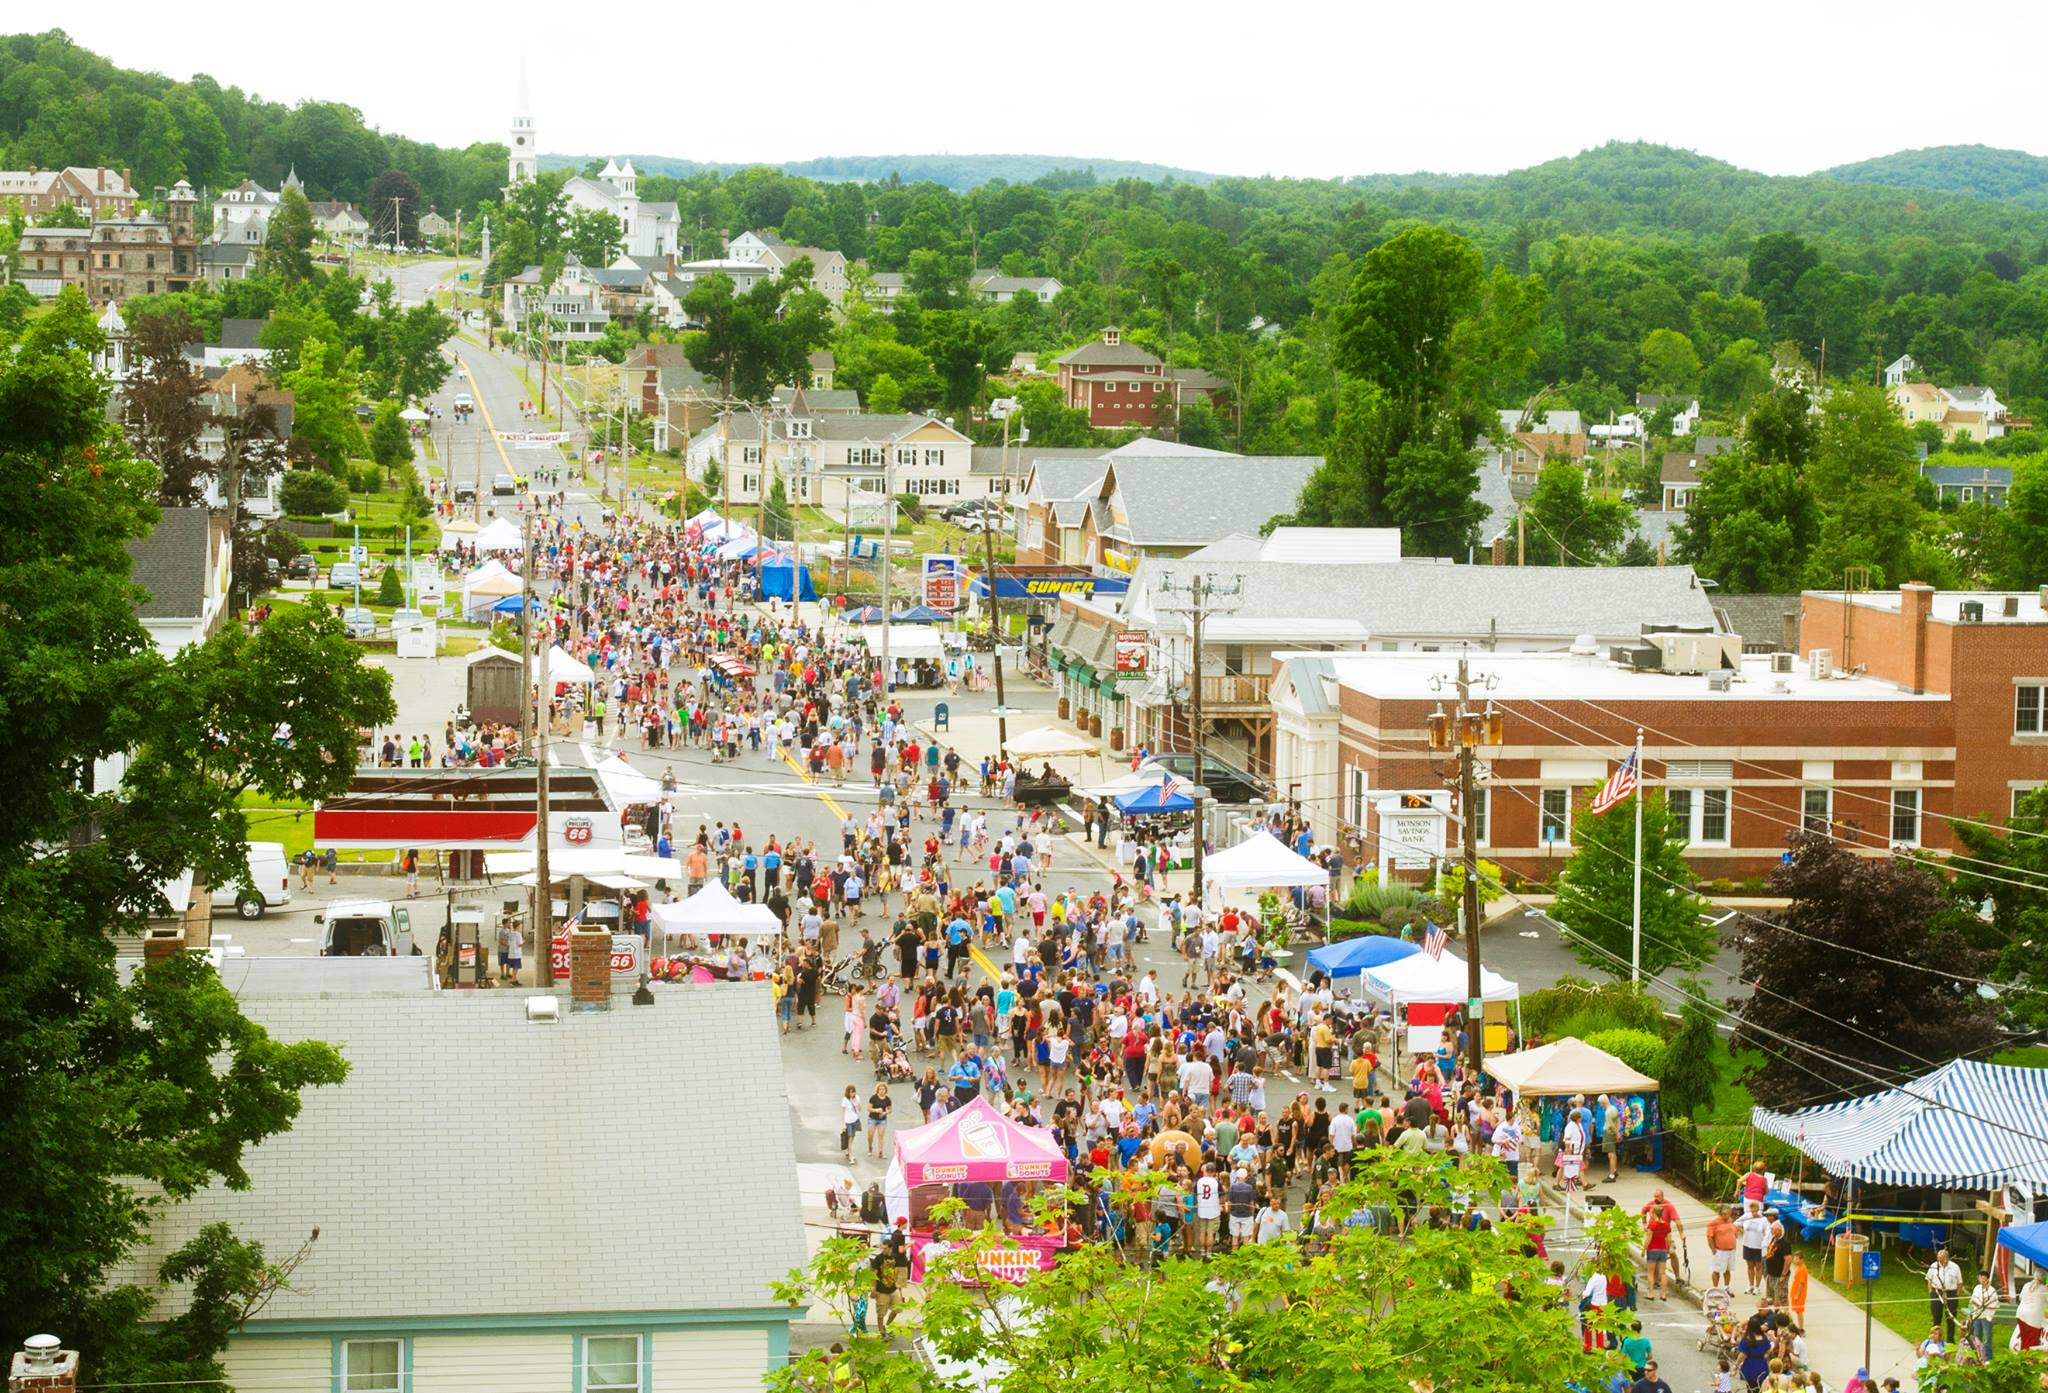 Monson Summerfest Draws on Average 10,000 to 13,000 People!